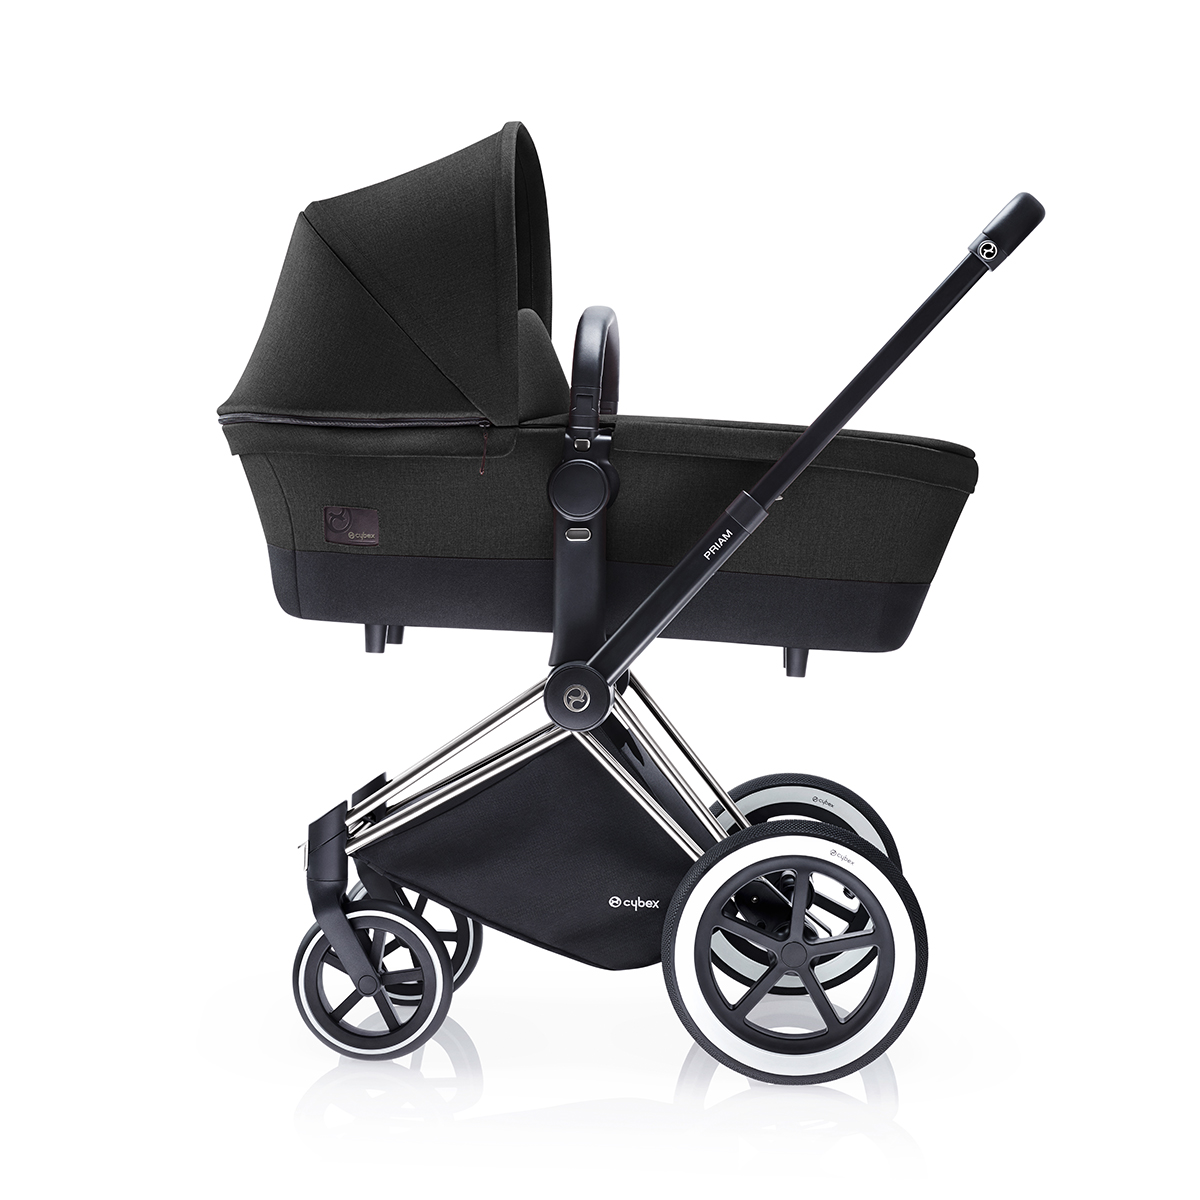 Cybex Priam Lux 3 In 1 Stroller